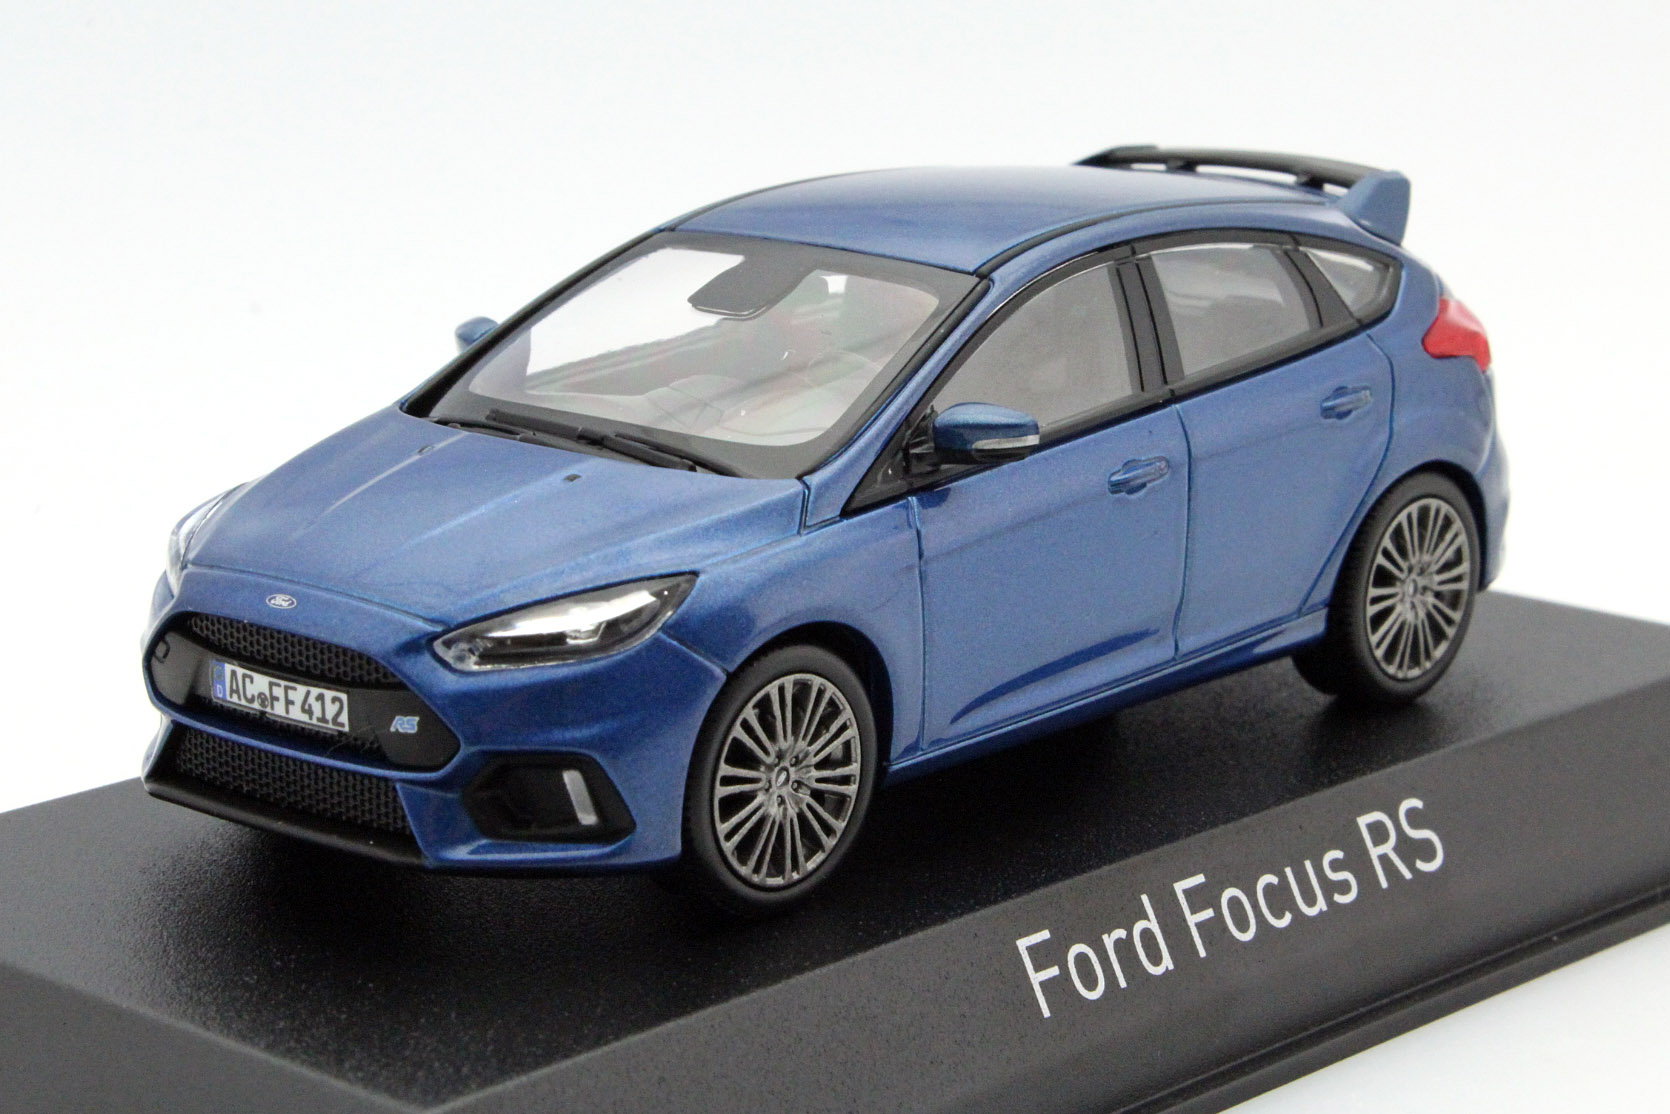 ford focus rs 2016 blue metallic die cast model norev 270544. Black Bedroom Furniture Sets. Home Design Ideas